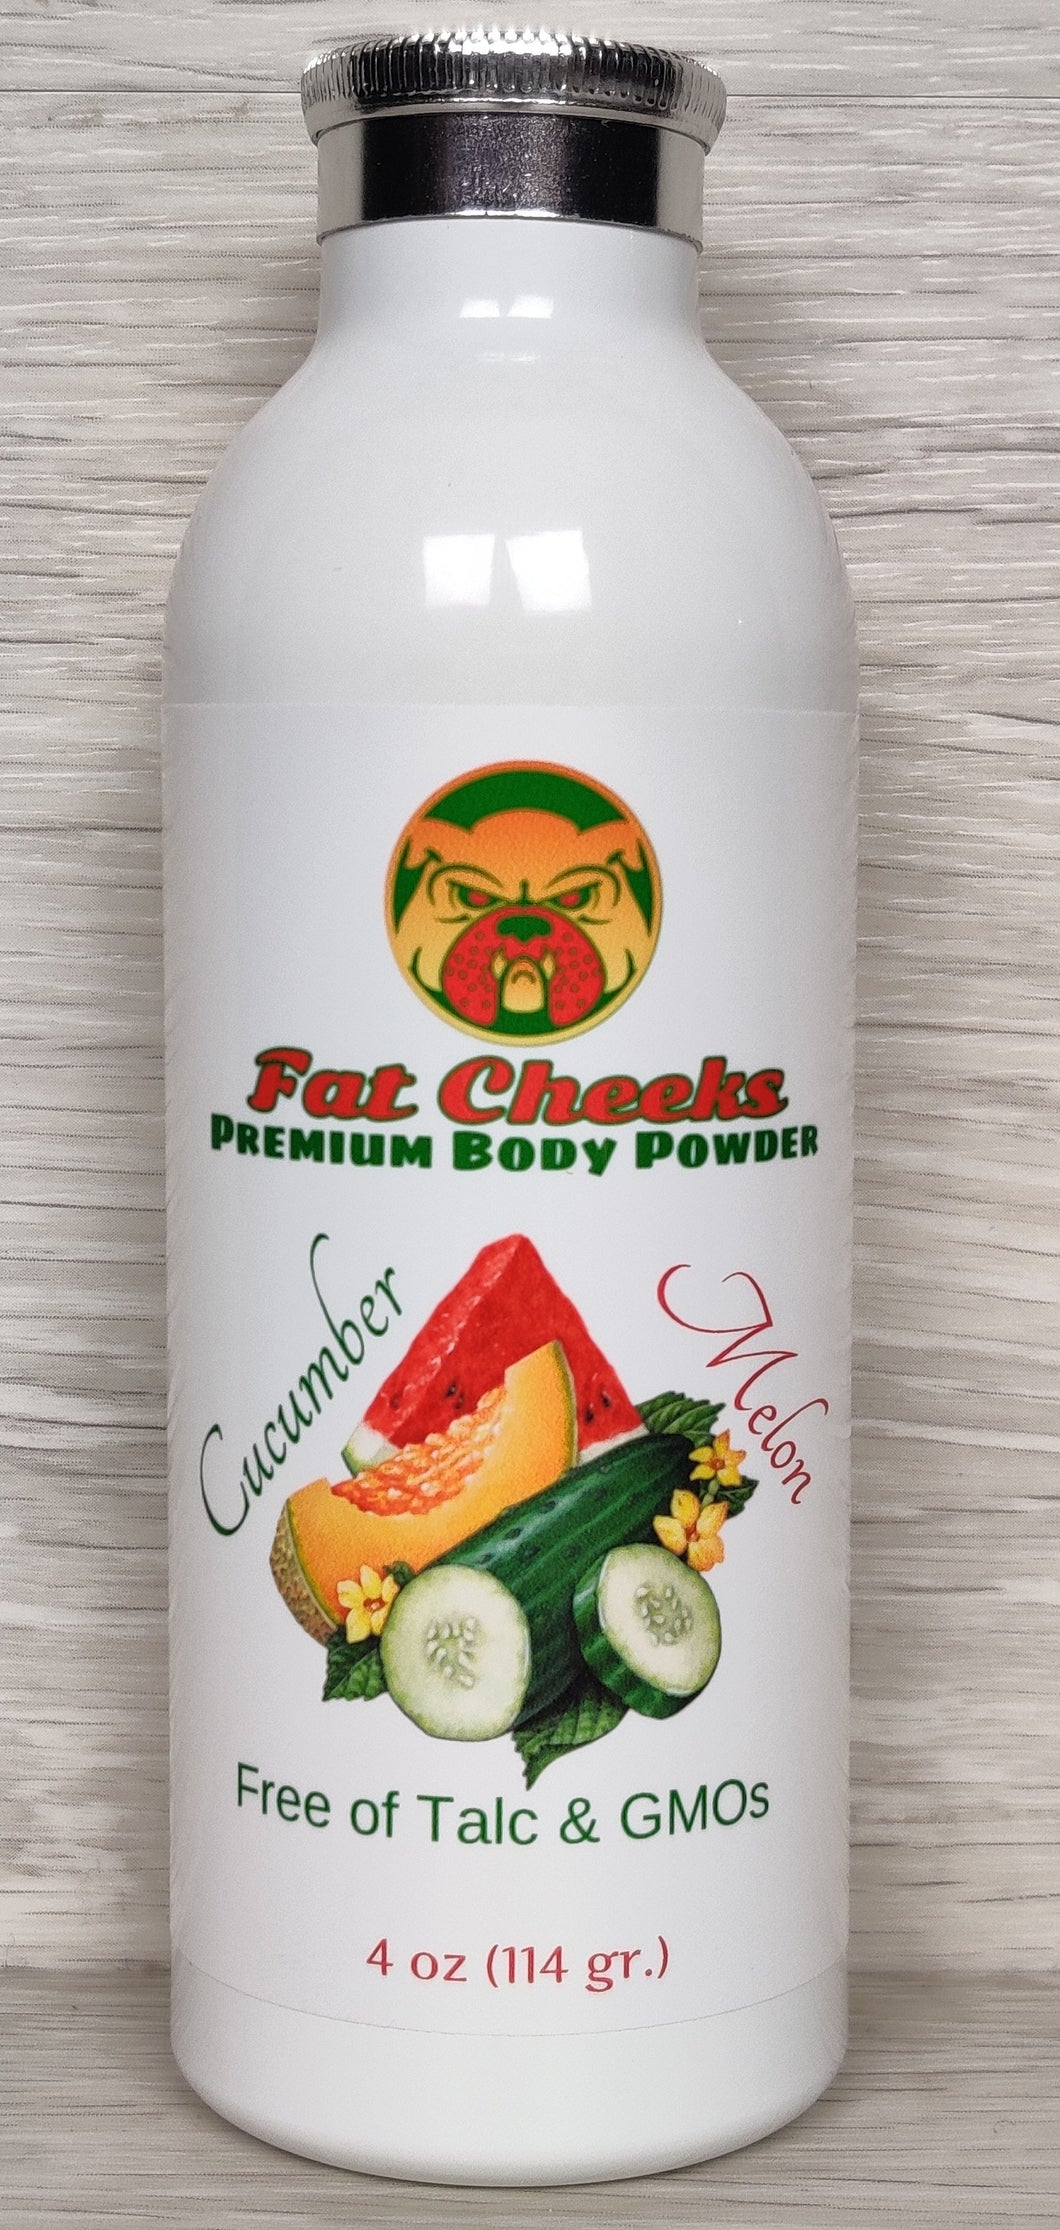 Cucumber Melon Fat Cheeks talc free Body Powder, Ball Powder, Foot Powder, Dry Shampoo, barbershop and spray tan dry down powder